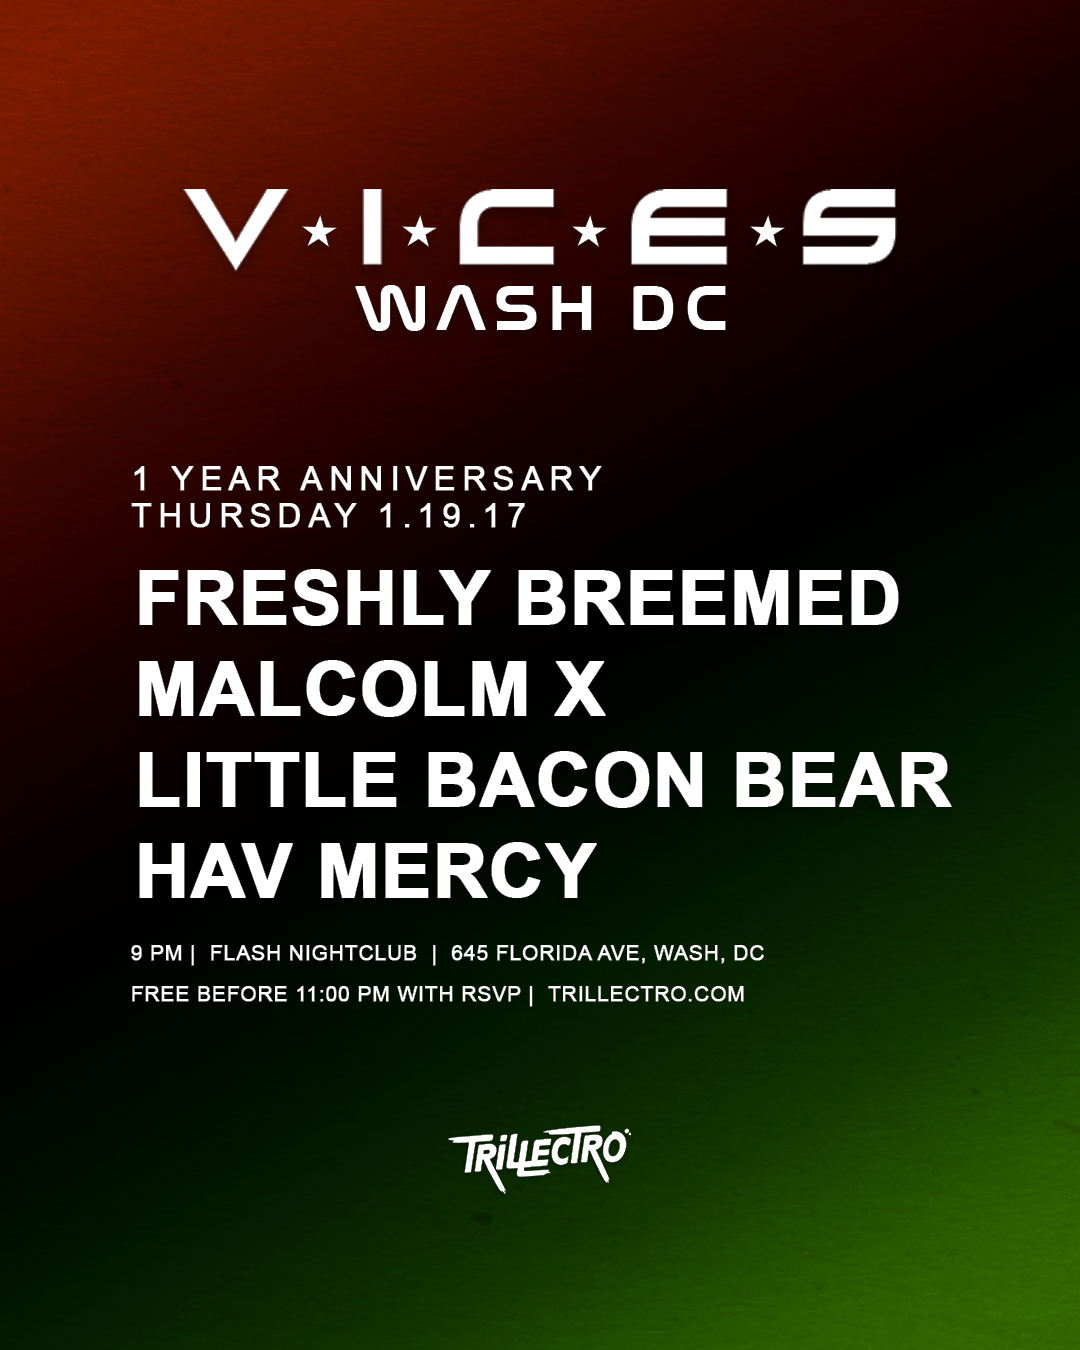 VICES DC 1 YEAR ANNIVERSARY